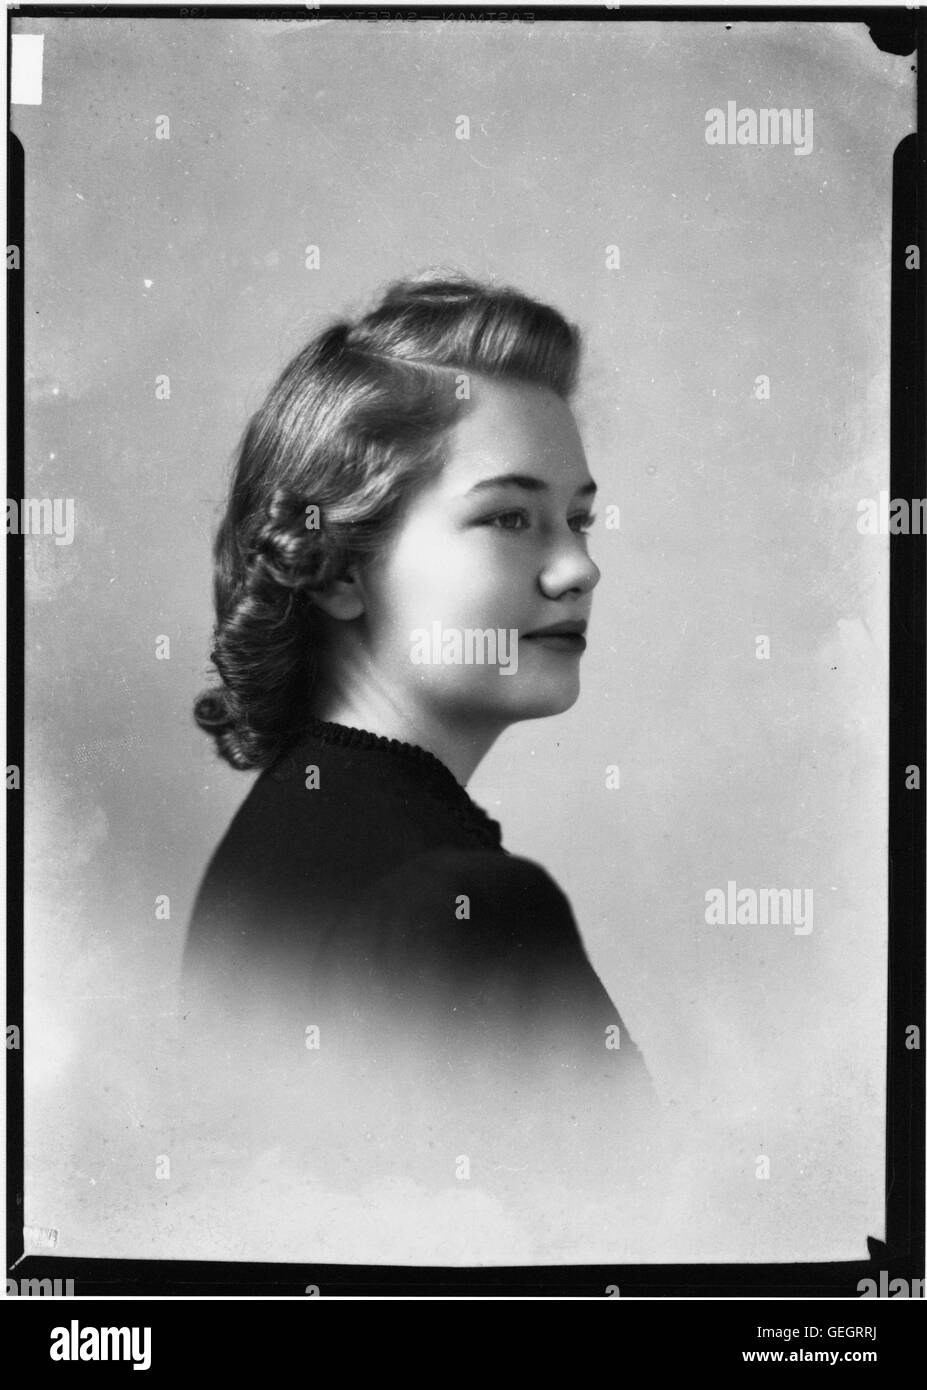 Portrait photograph of Marianne Thaxton - Stock Image